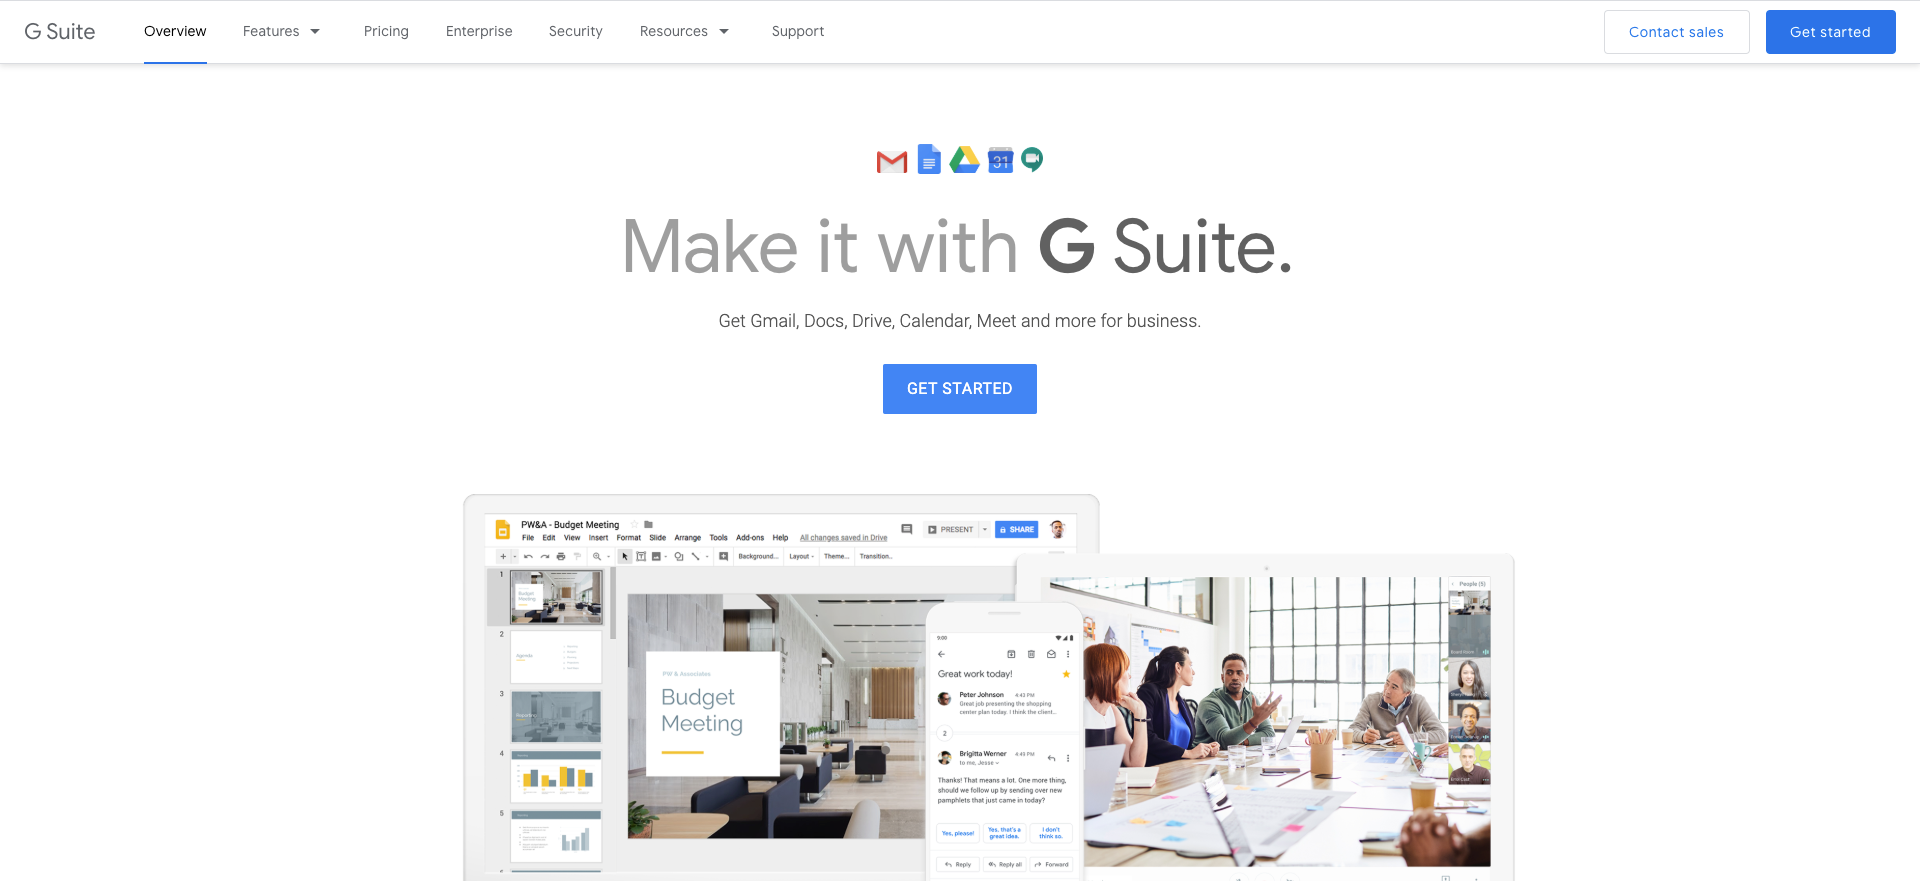 gmail for gsuite homepage screenshot